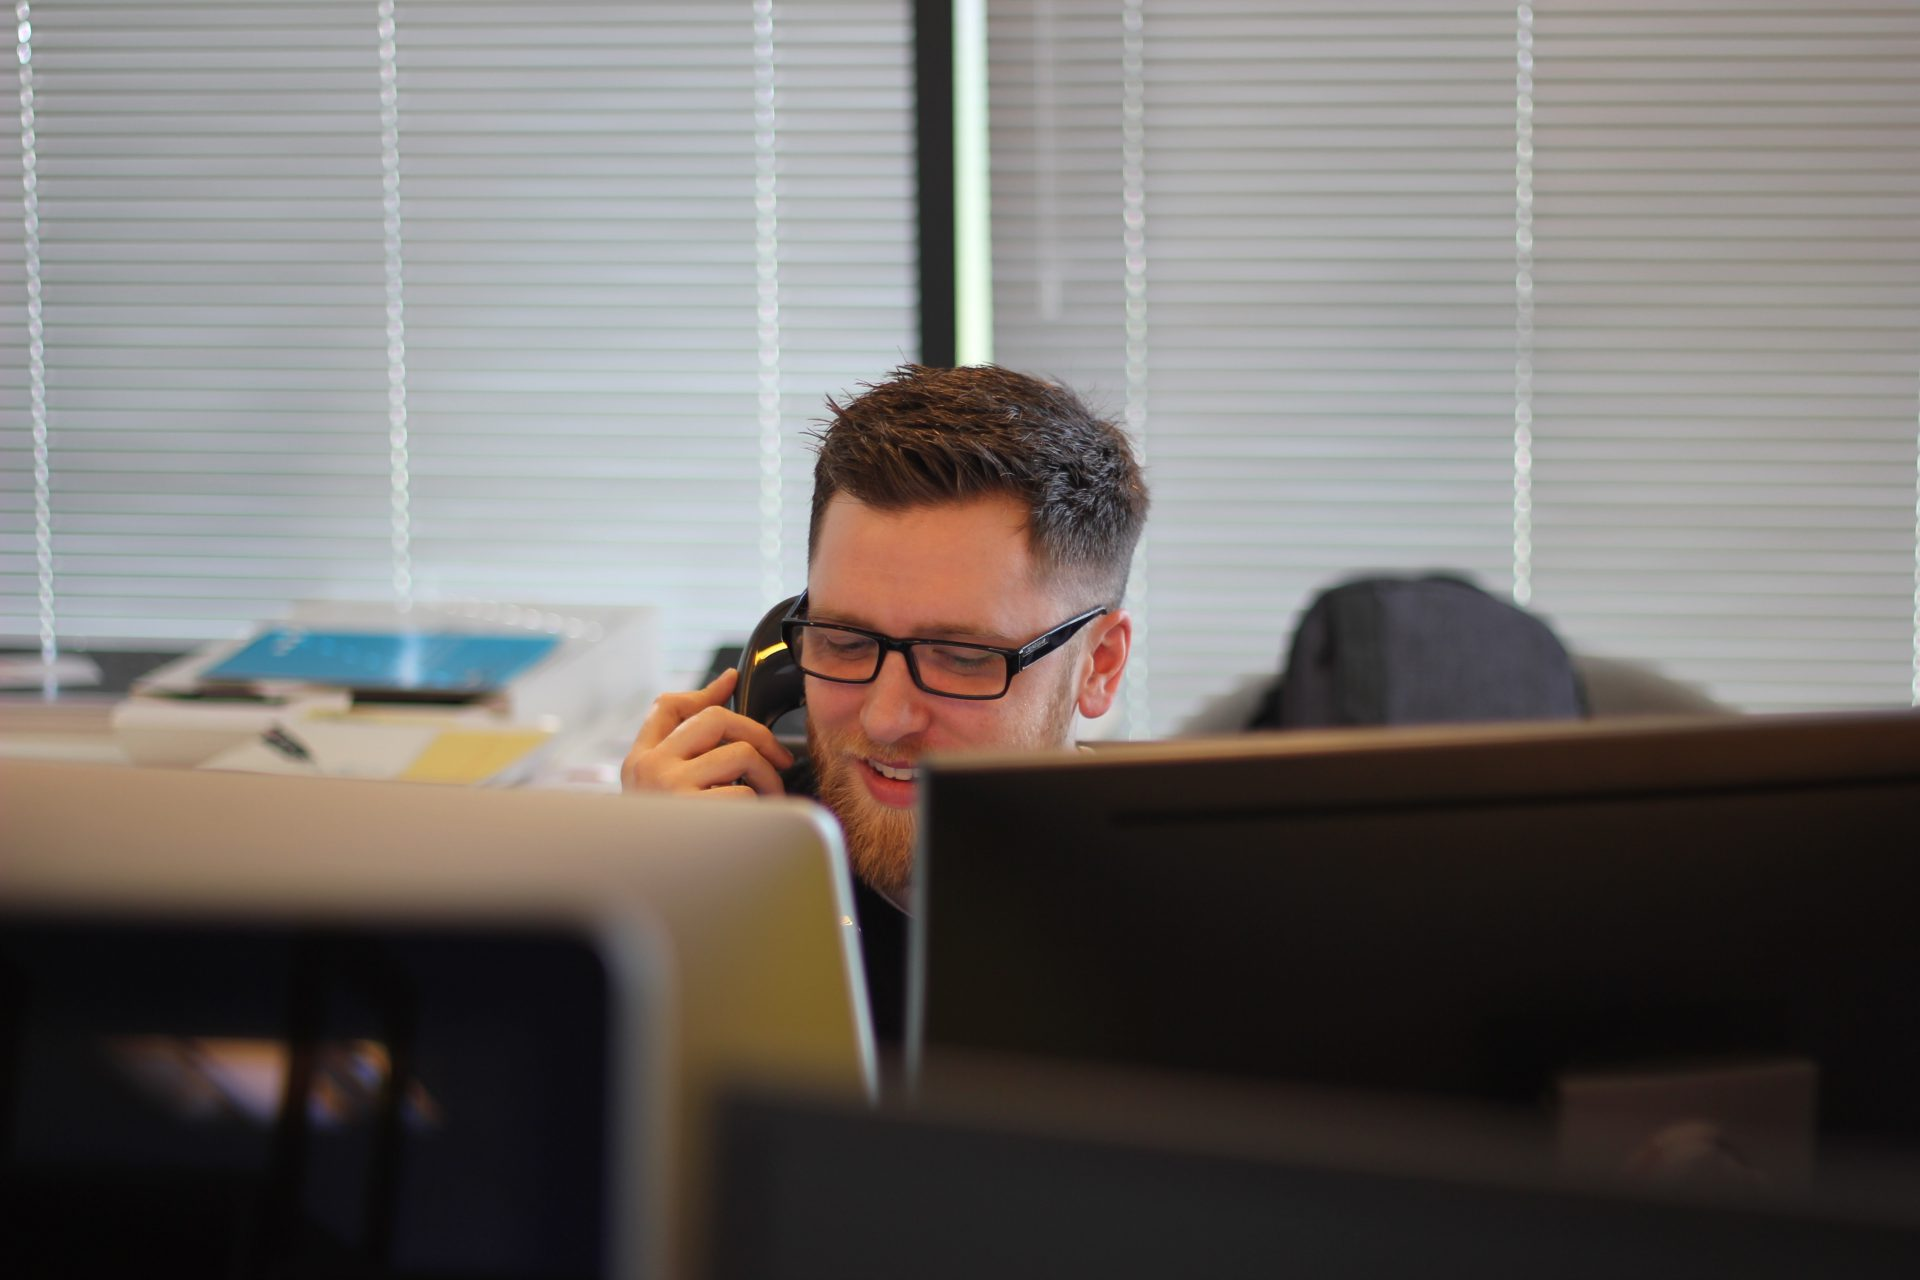 Man on call in an office